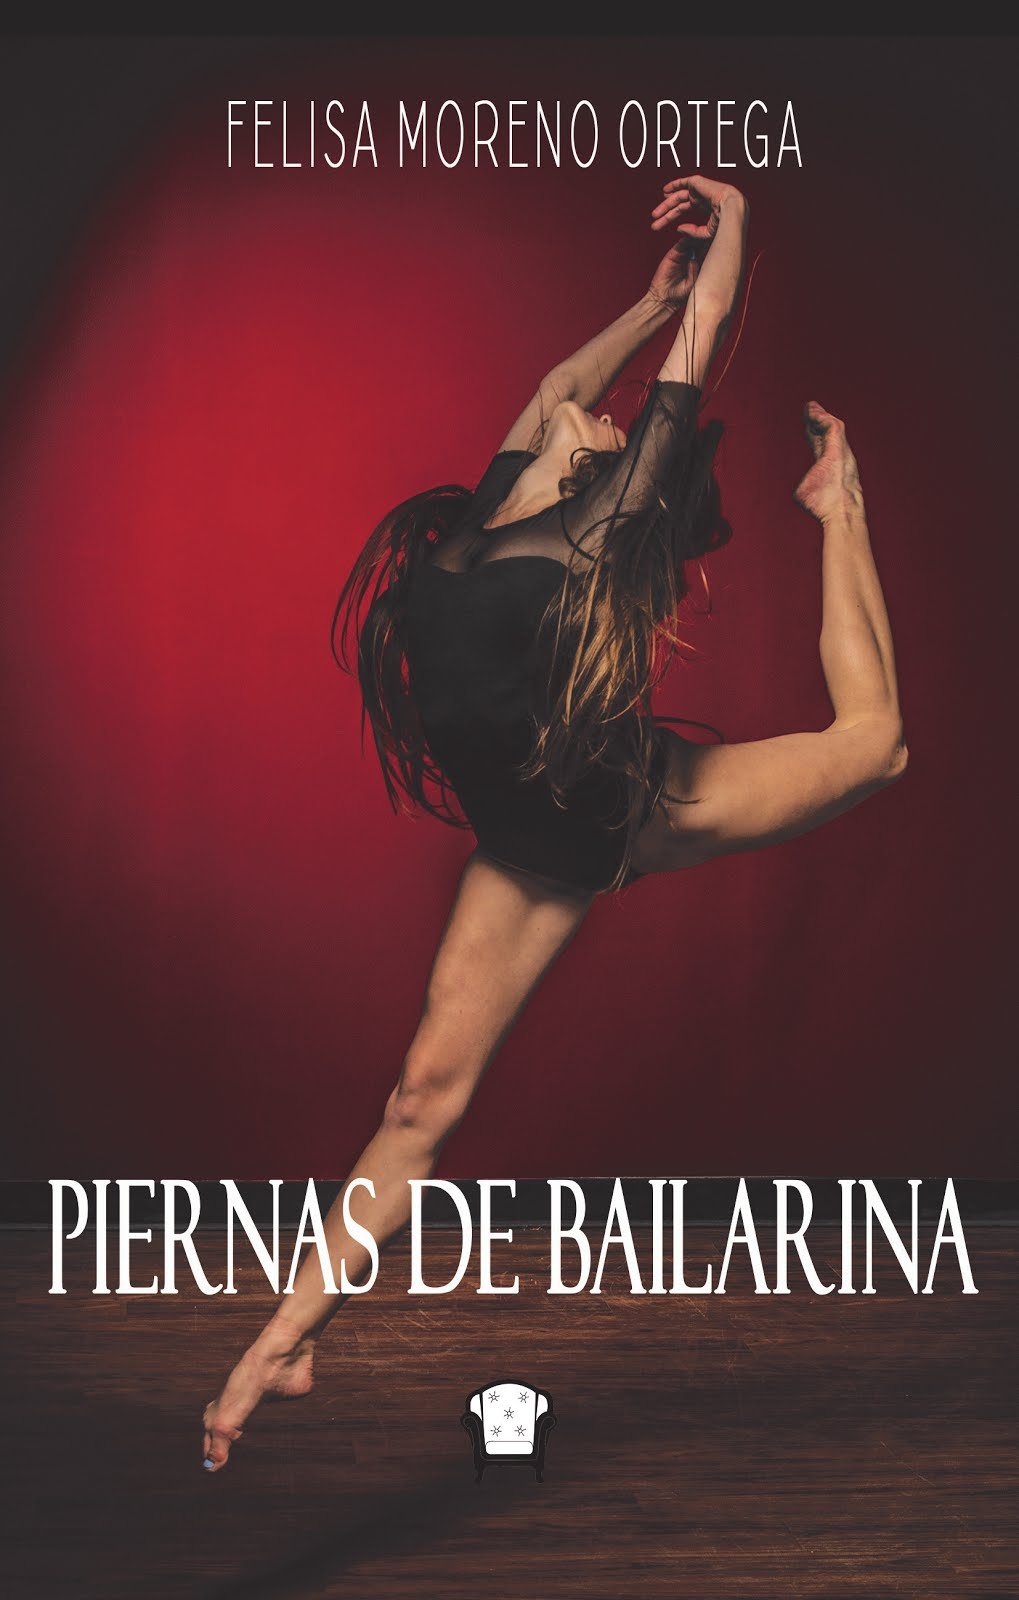 Piernas de bailarina